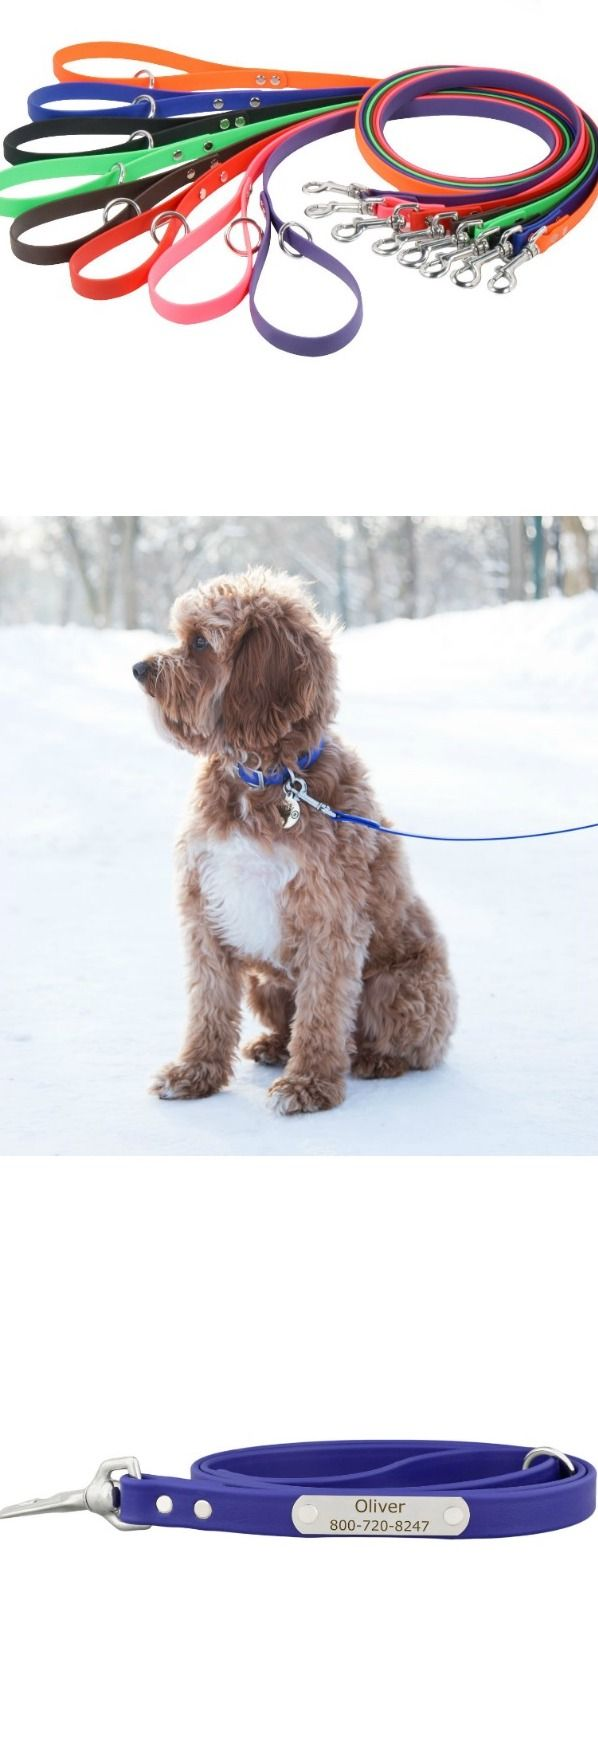 Super soft and durable, our Waterproof Soft Grip Personalized Leashes are in a class of their own. Personalize your weatherproof leash with a laser engraved stainless steel nameplate.